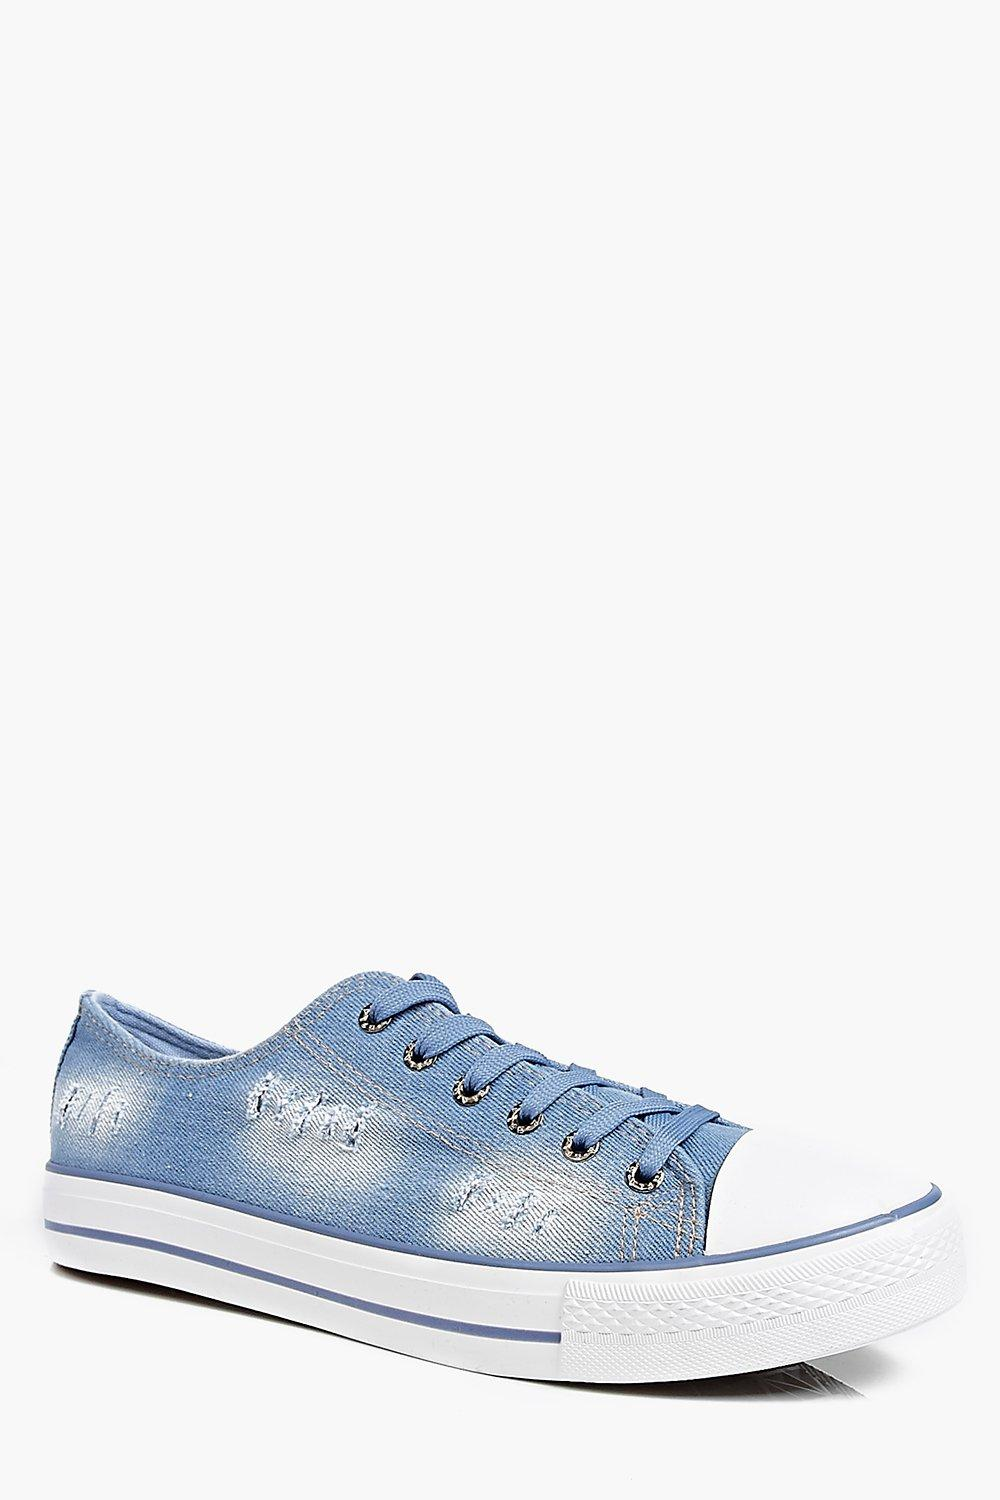 Distressed Washed Blue Lace Up Plimsolls